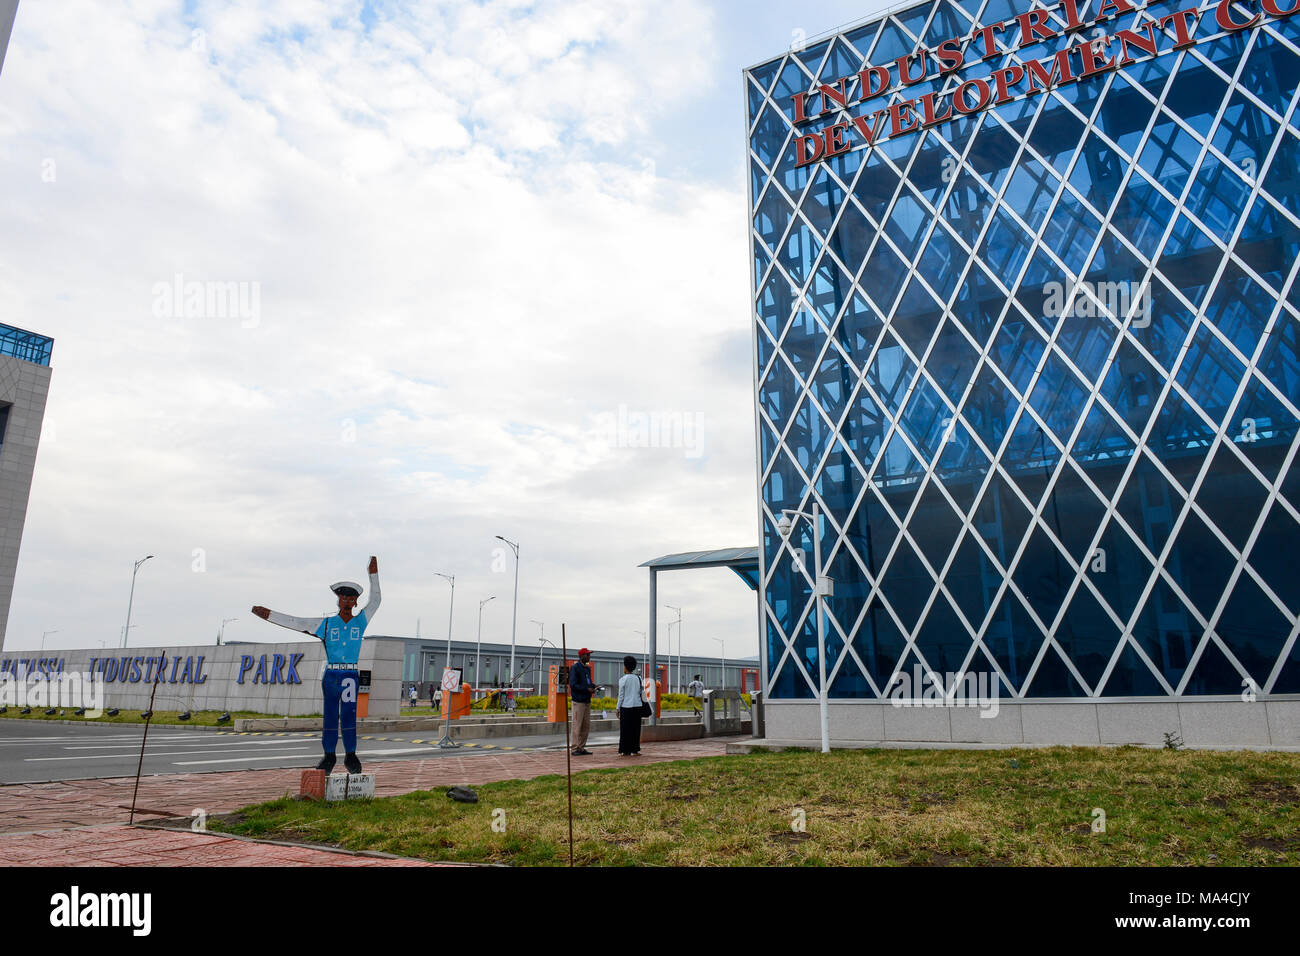 ETHIOPIA , Southern Nations, Hawassa or Awasa, Hawassa Industrial Park, chinese-built for the ethiopian government to attract foreign investors with low rent and tax free to establish a textile industry and create thousands of new jobs , main entrance gate with security check - Stock Image